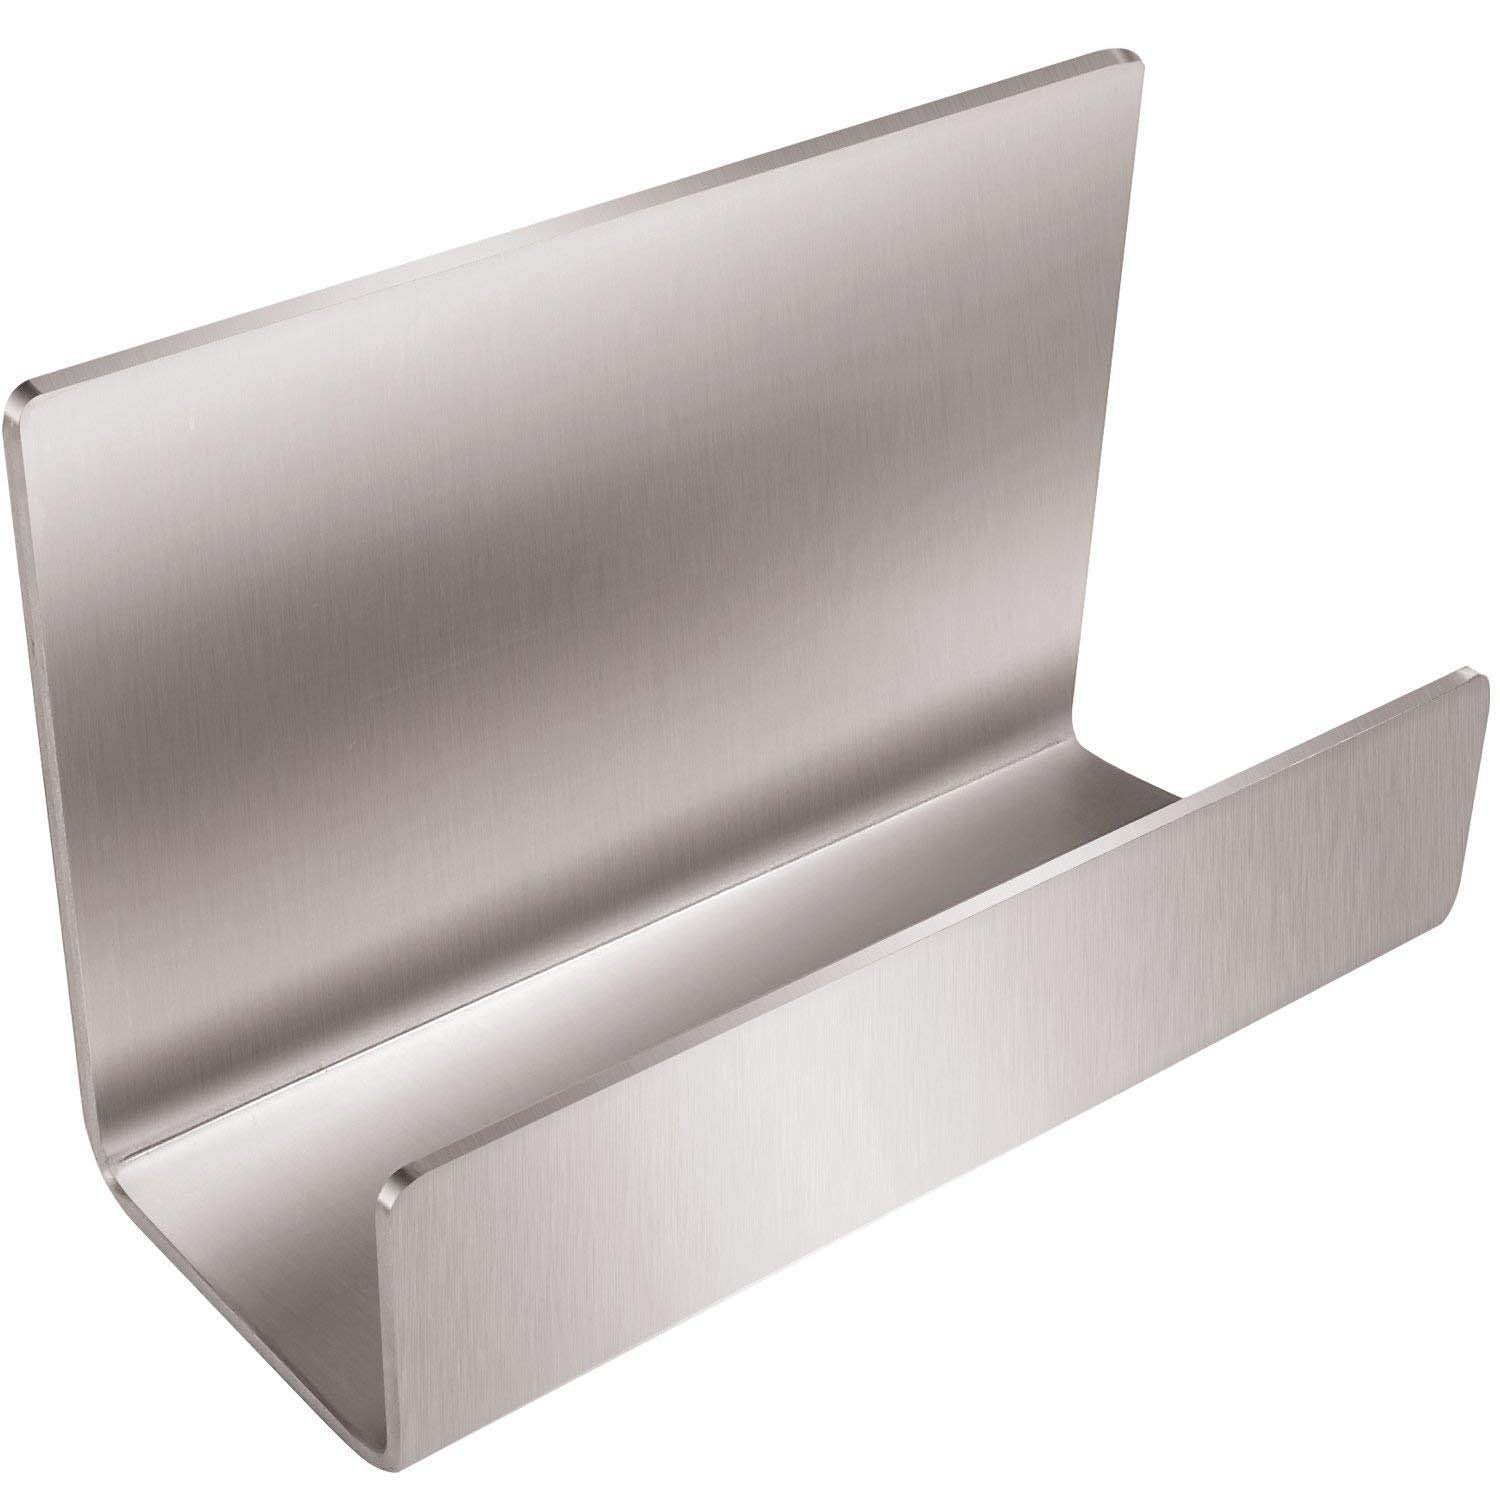 PPYY NEW -Full Stainless Steel Office Business Card Holder Name Card Stand Display (Silver)